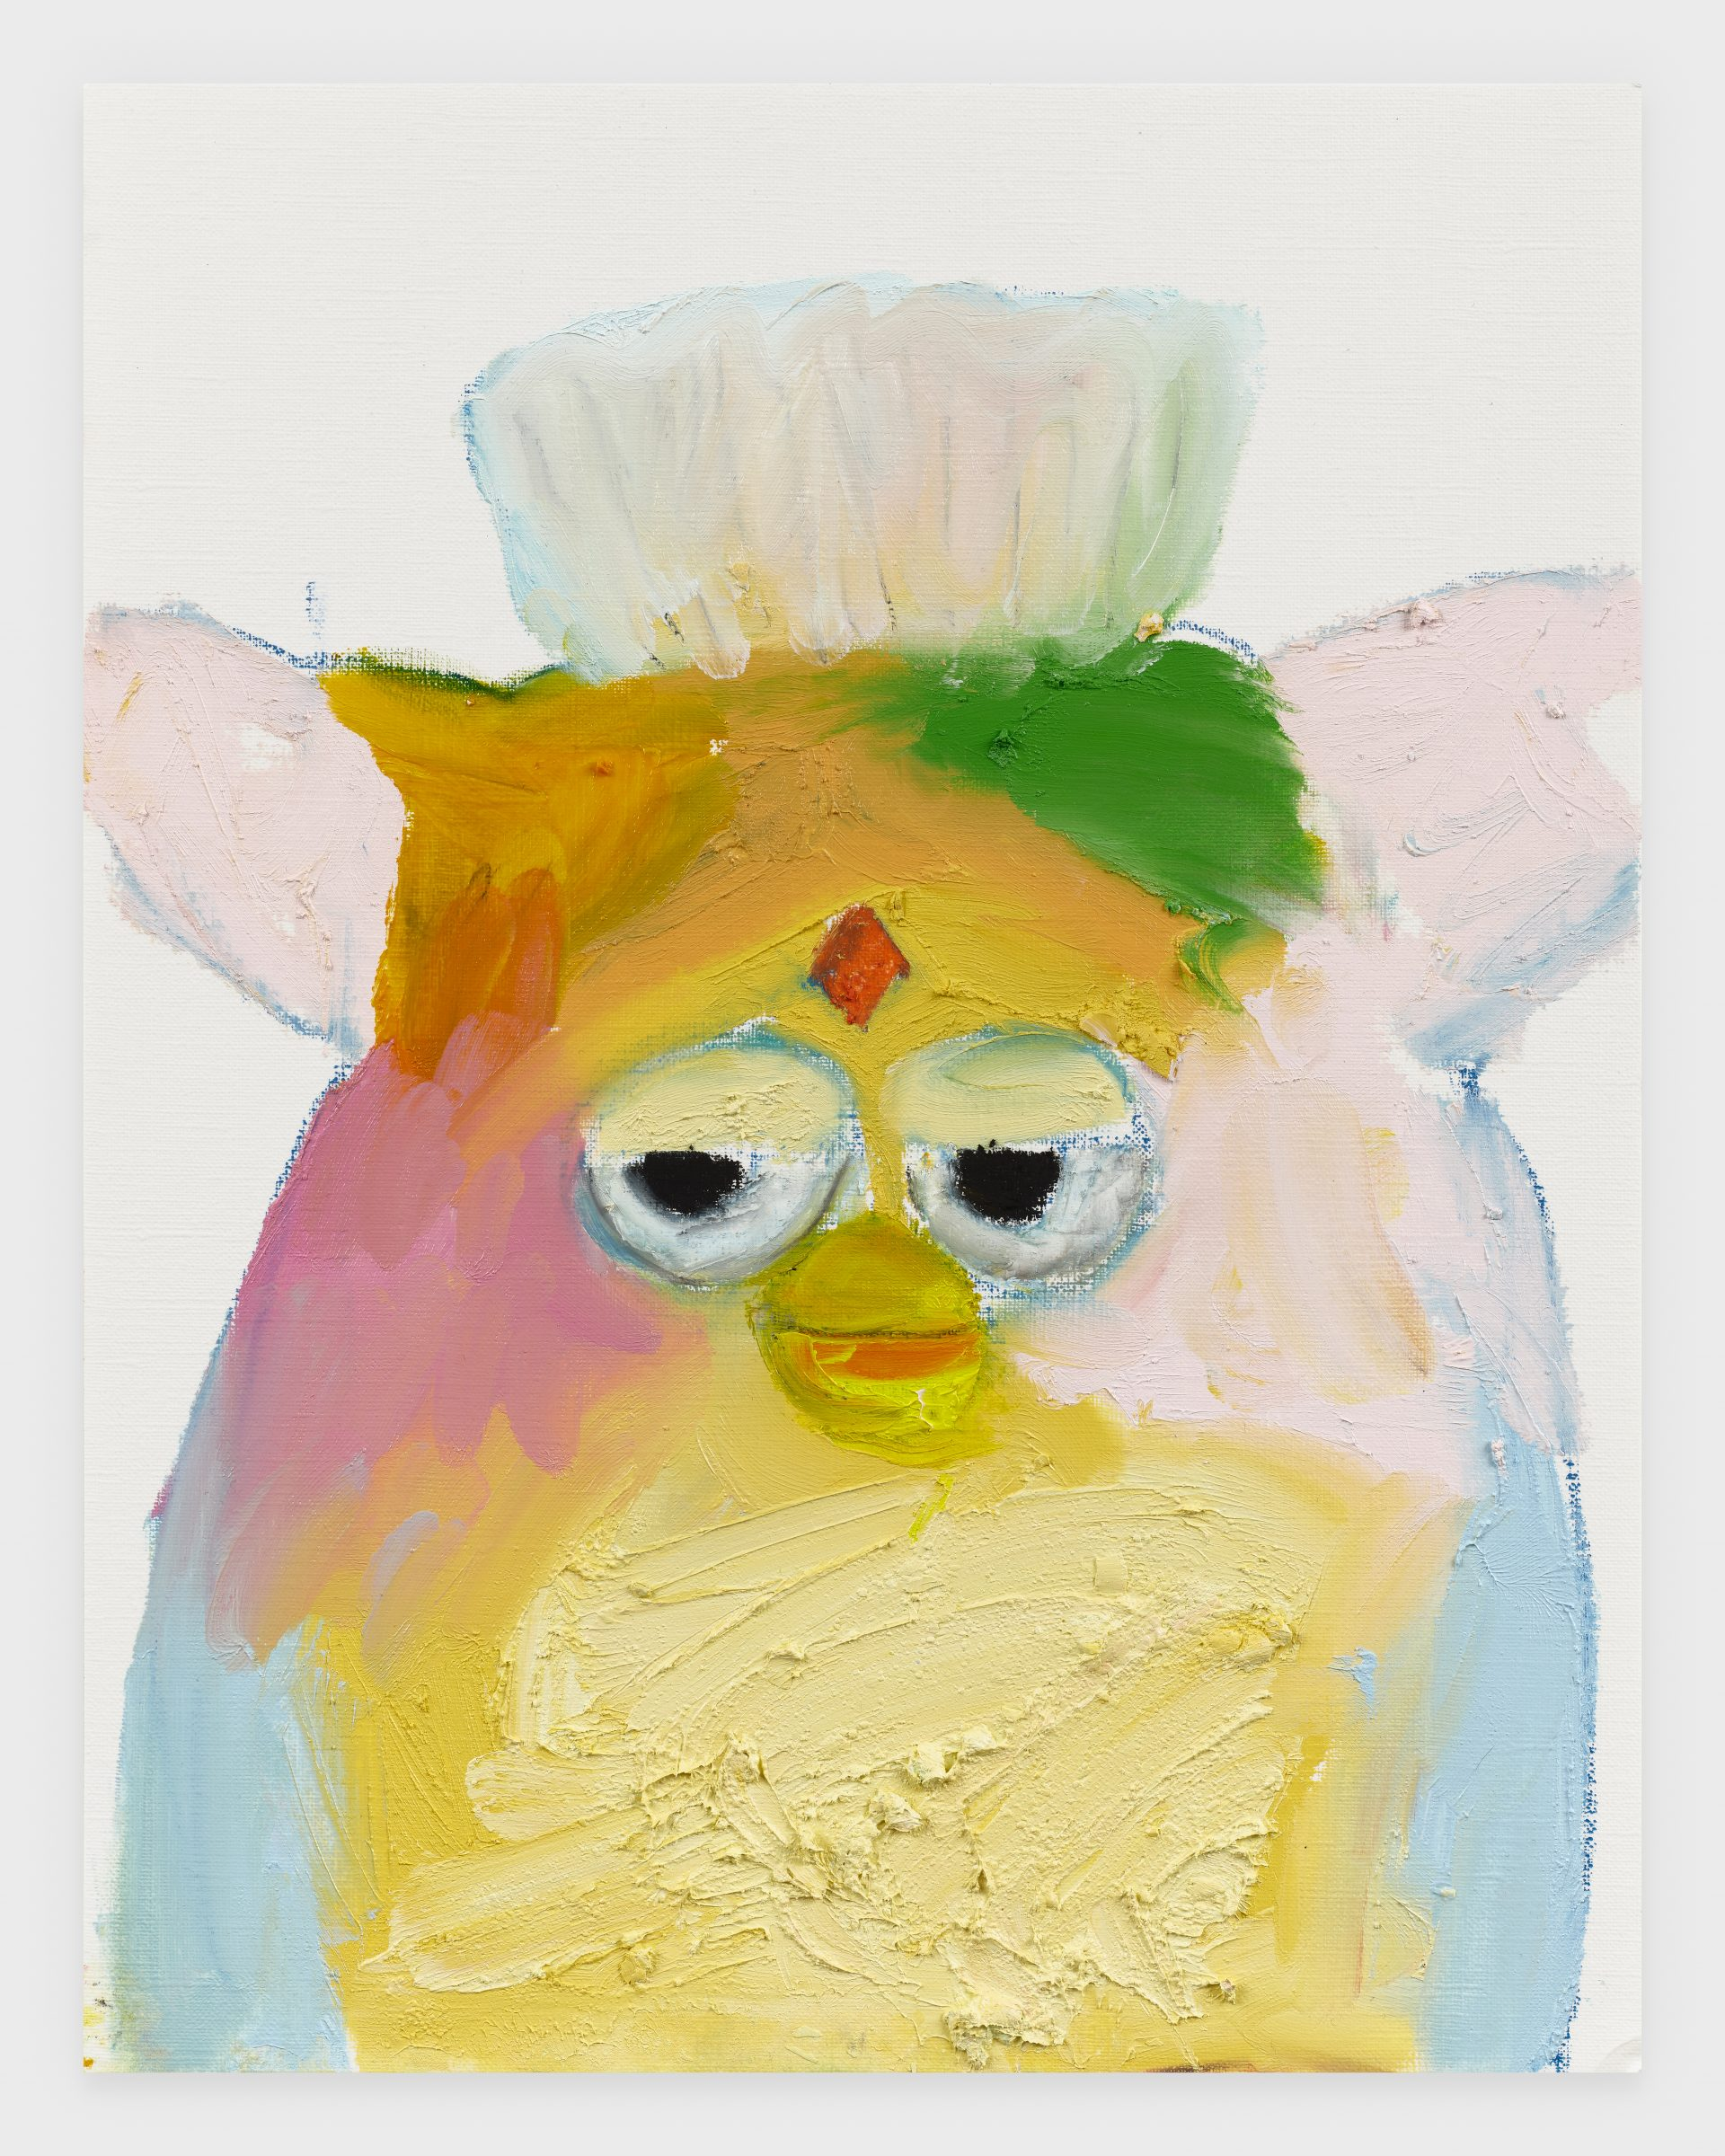 Rainbow Furby, 2020, Oil stick on archival paper, 11 x 14 inches